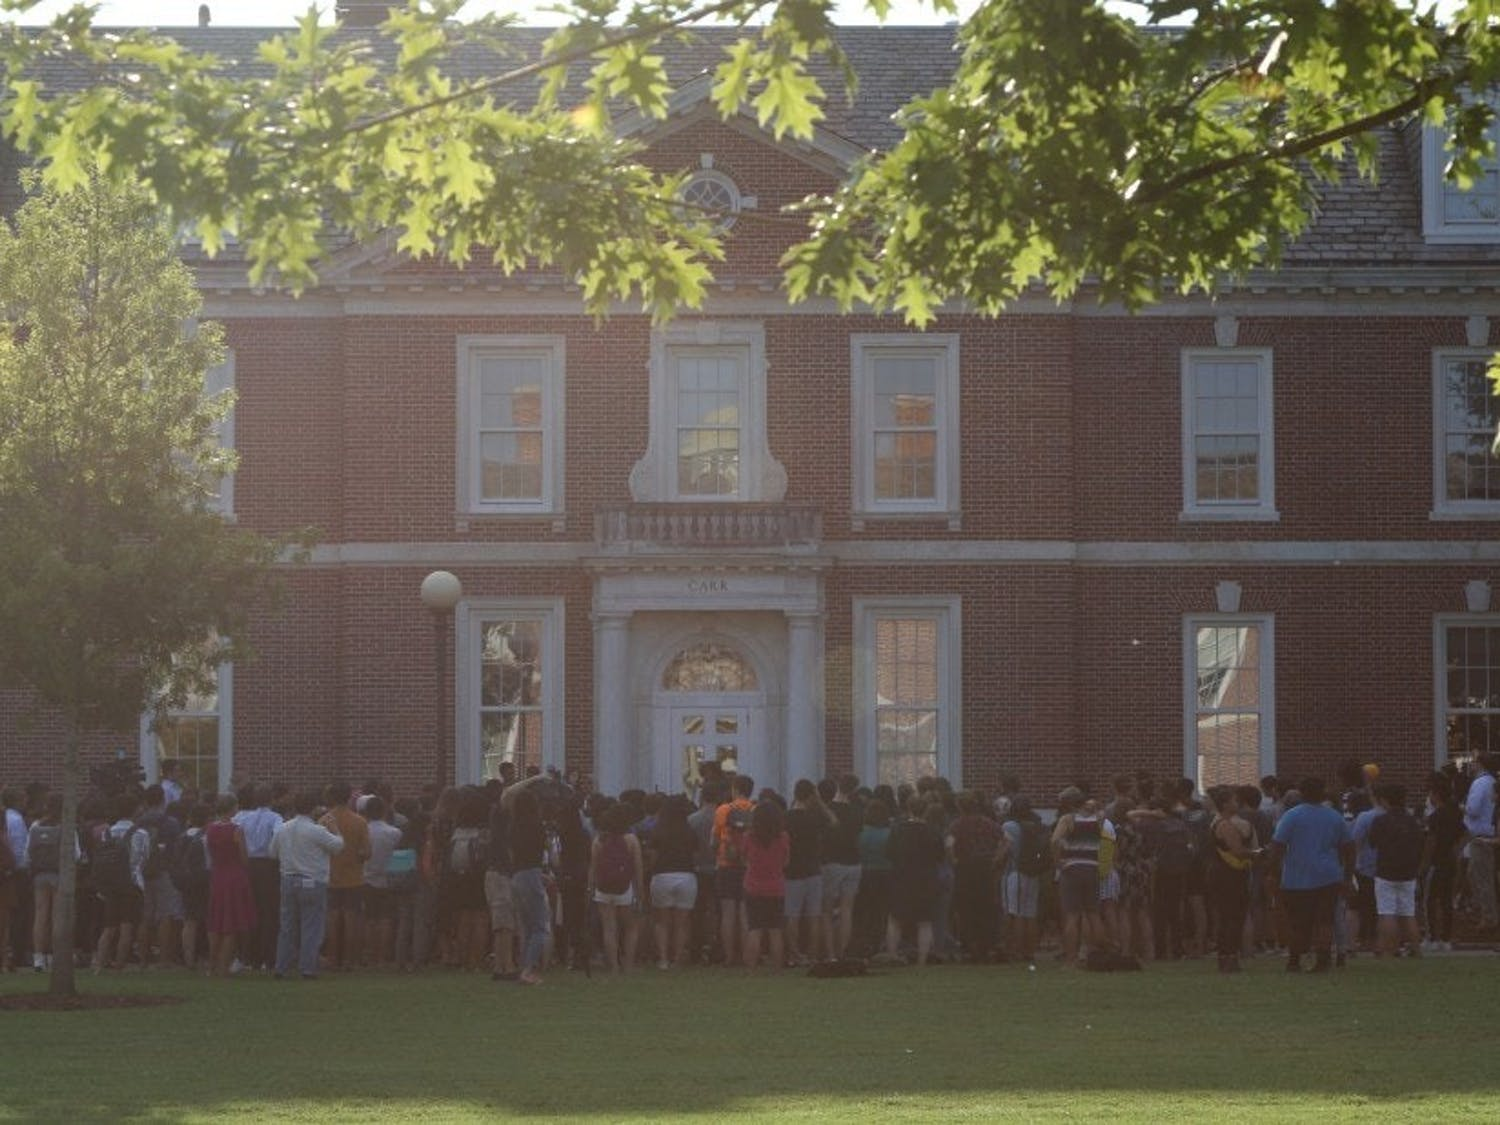 People's State of the University recently hosted a rally at the Carr Building on East Campus.